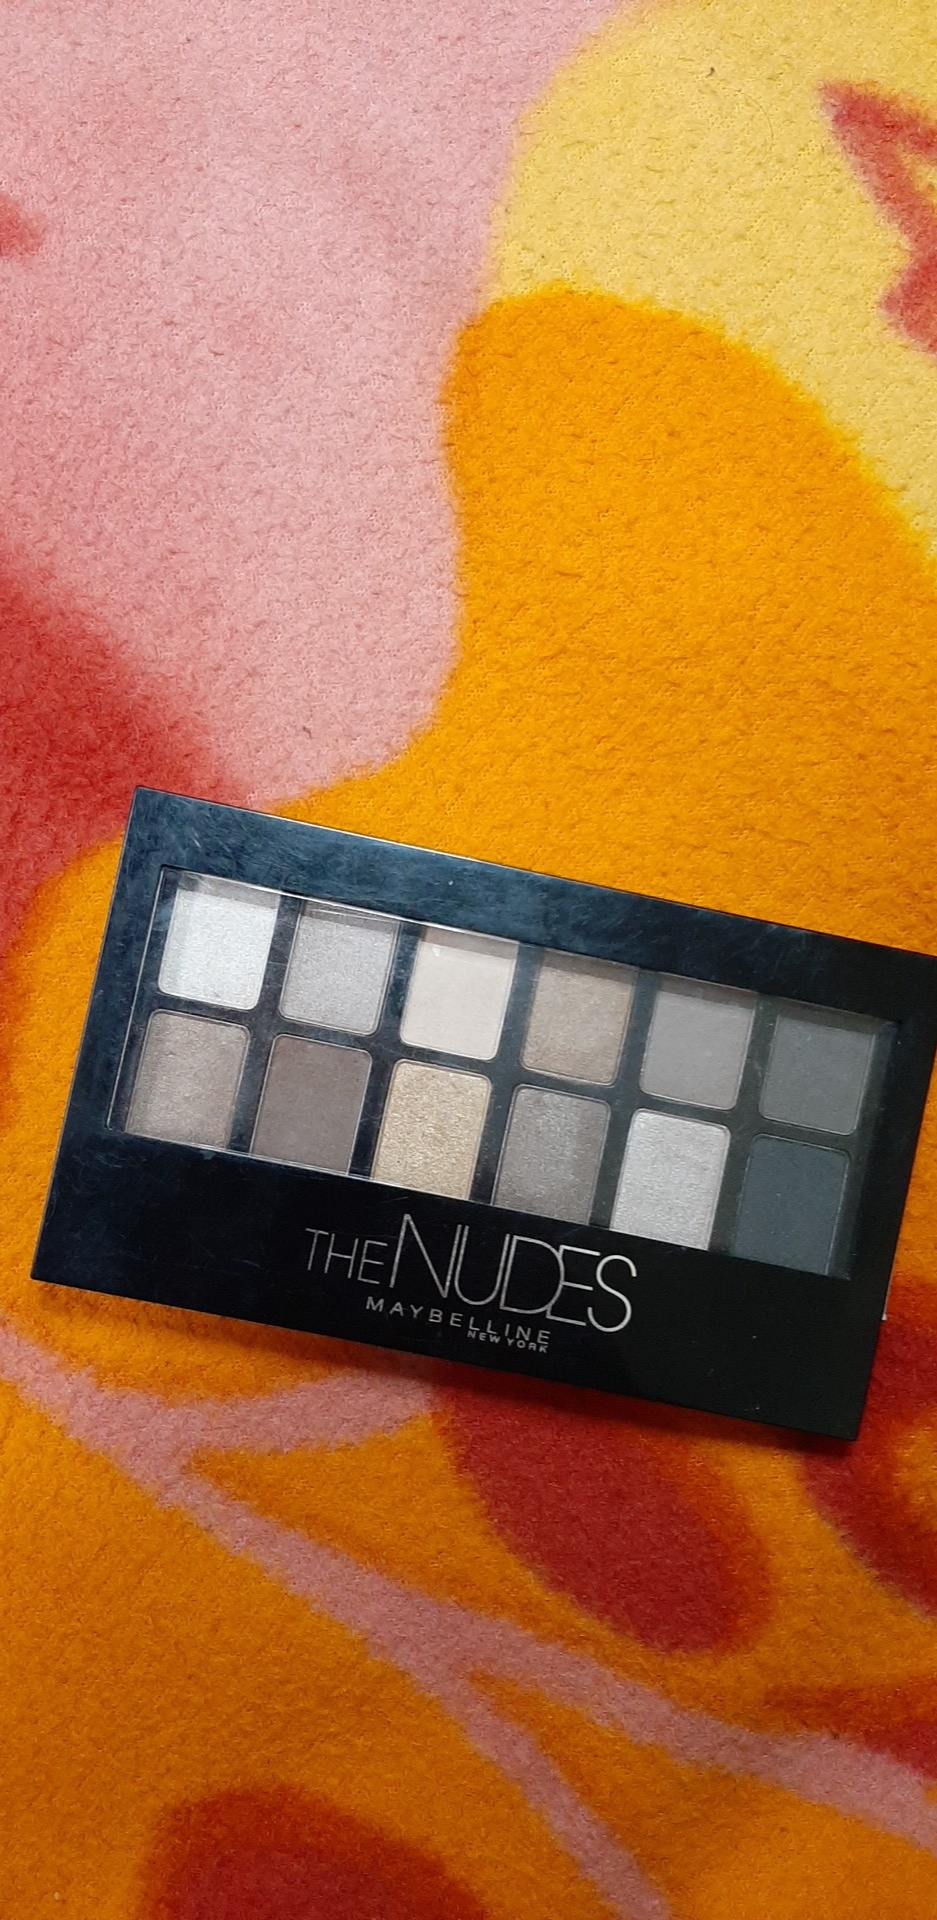 Maybelline New York The Nudes Eyeshadow Palette-Maybelline nudes eye palette-By simranwalia29